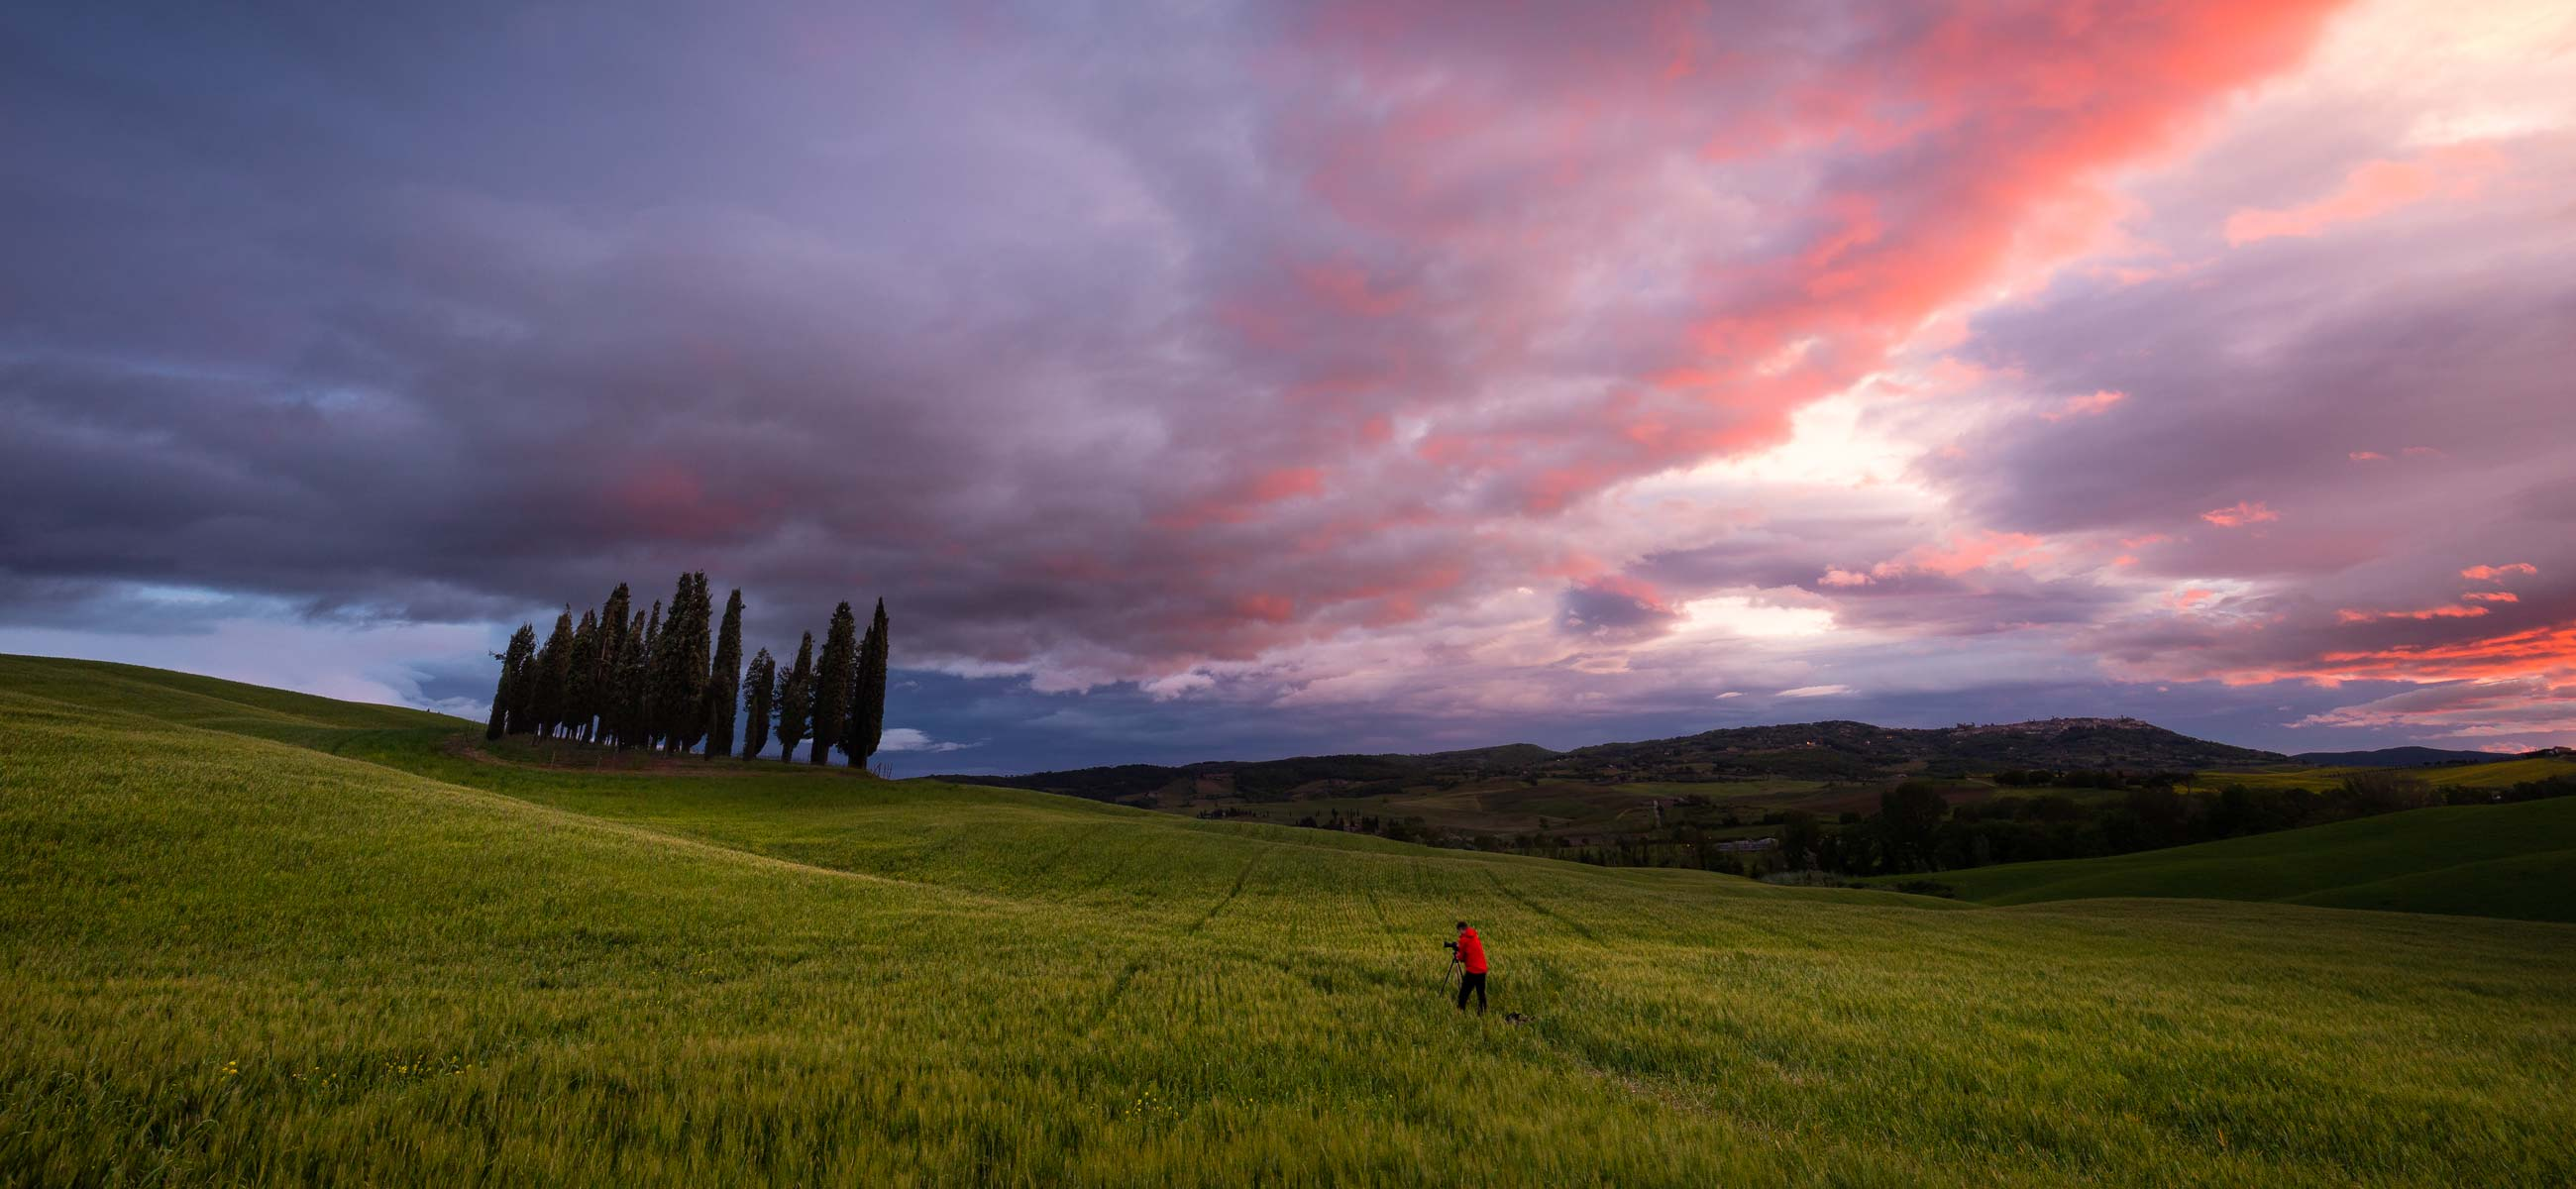 red sunset with photographer in-green-field-with-cypress-trees in Val d'Orcia during photography workshop